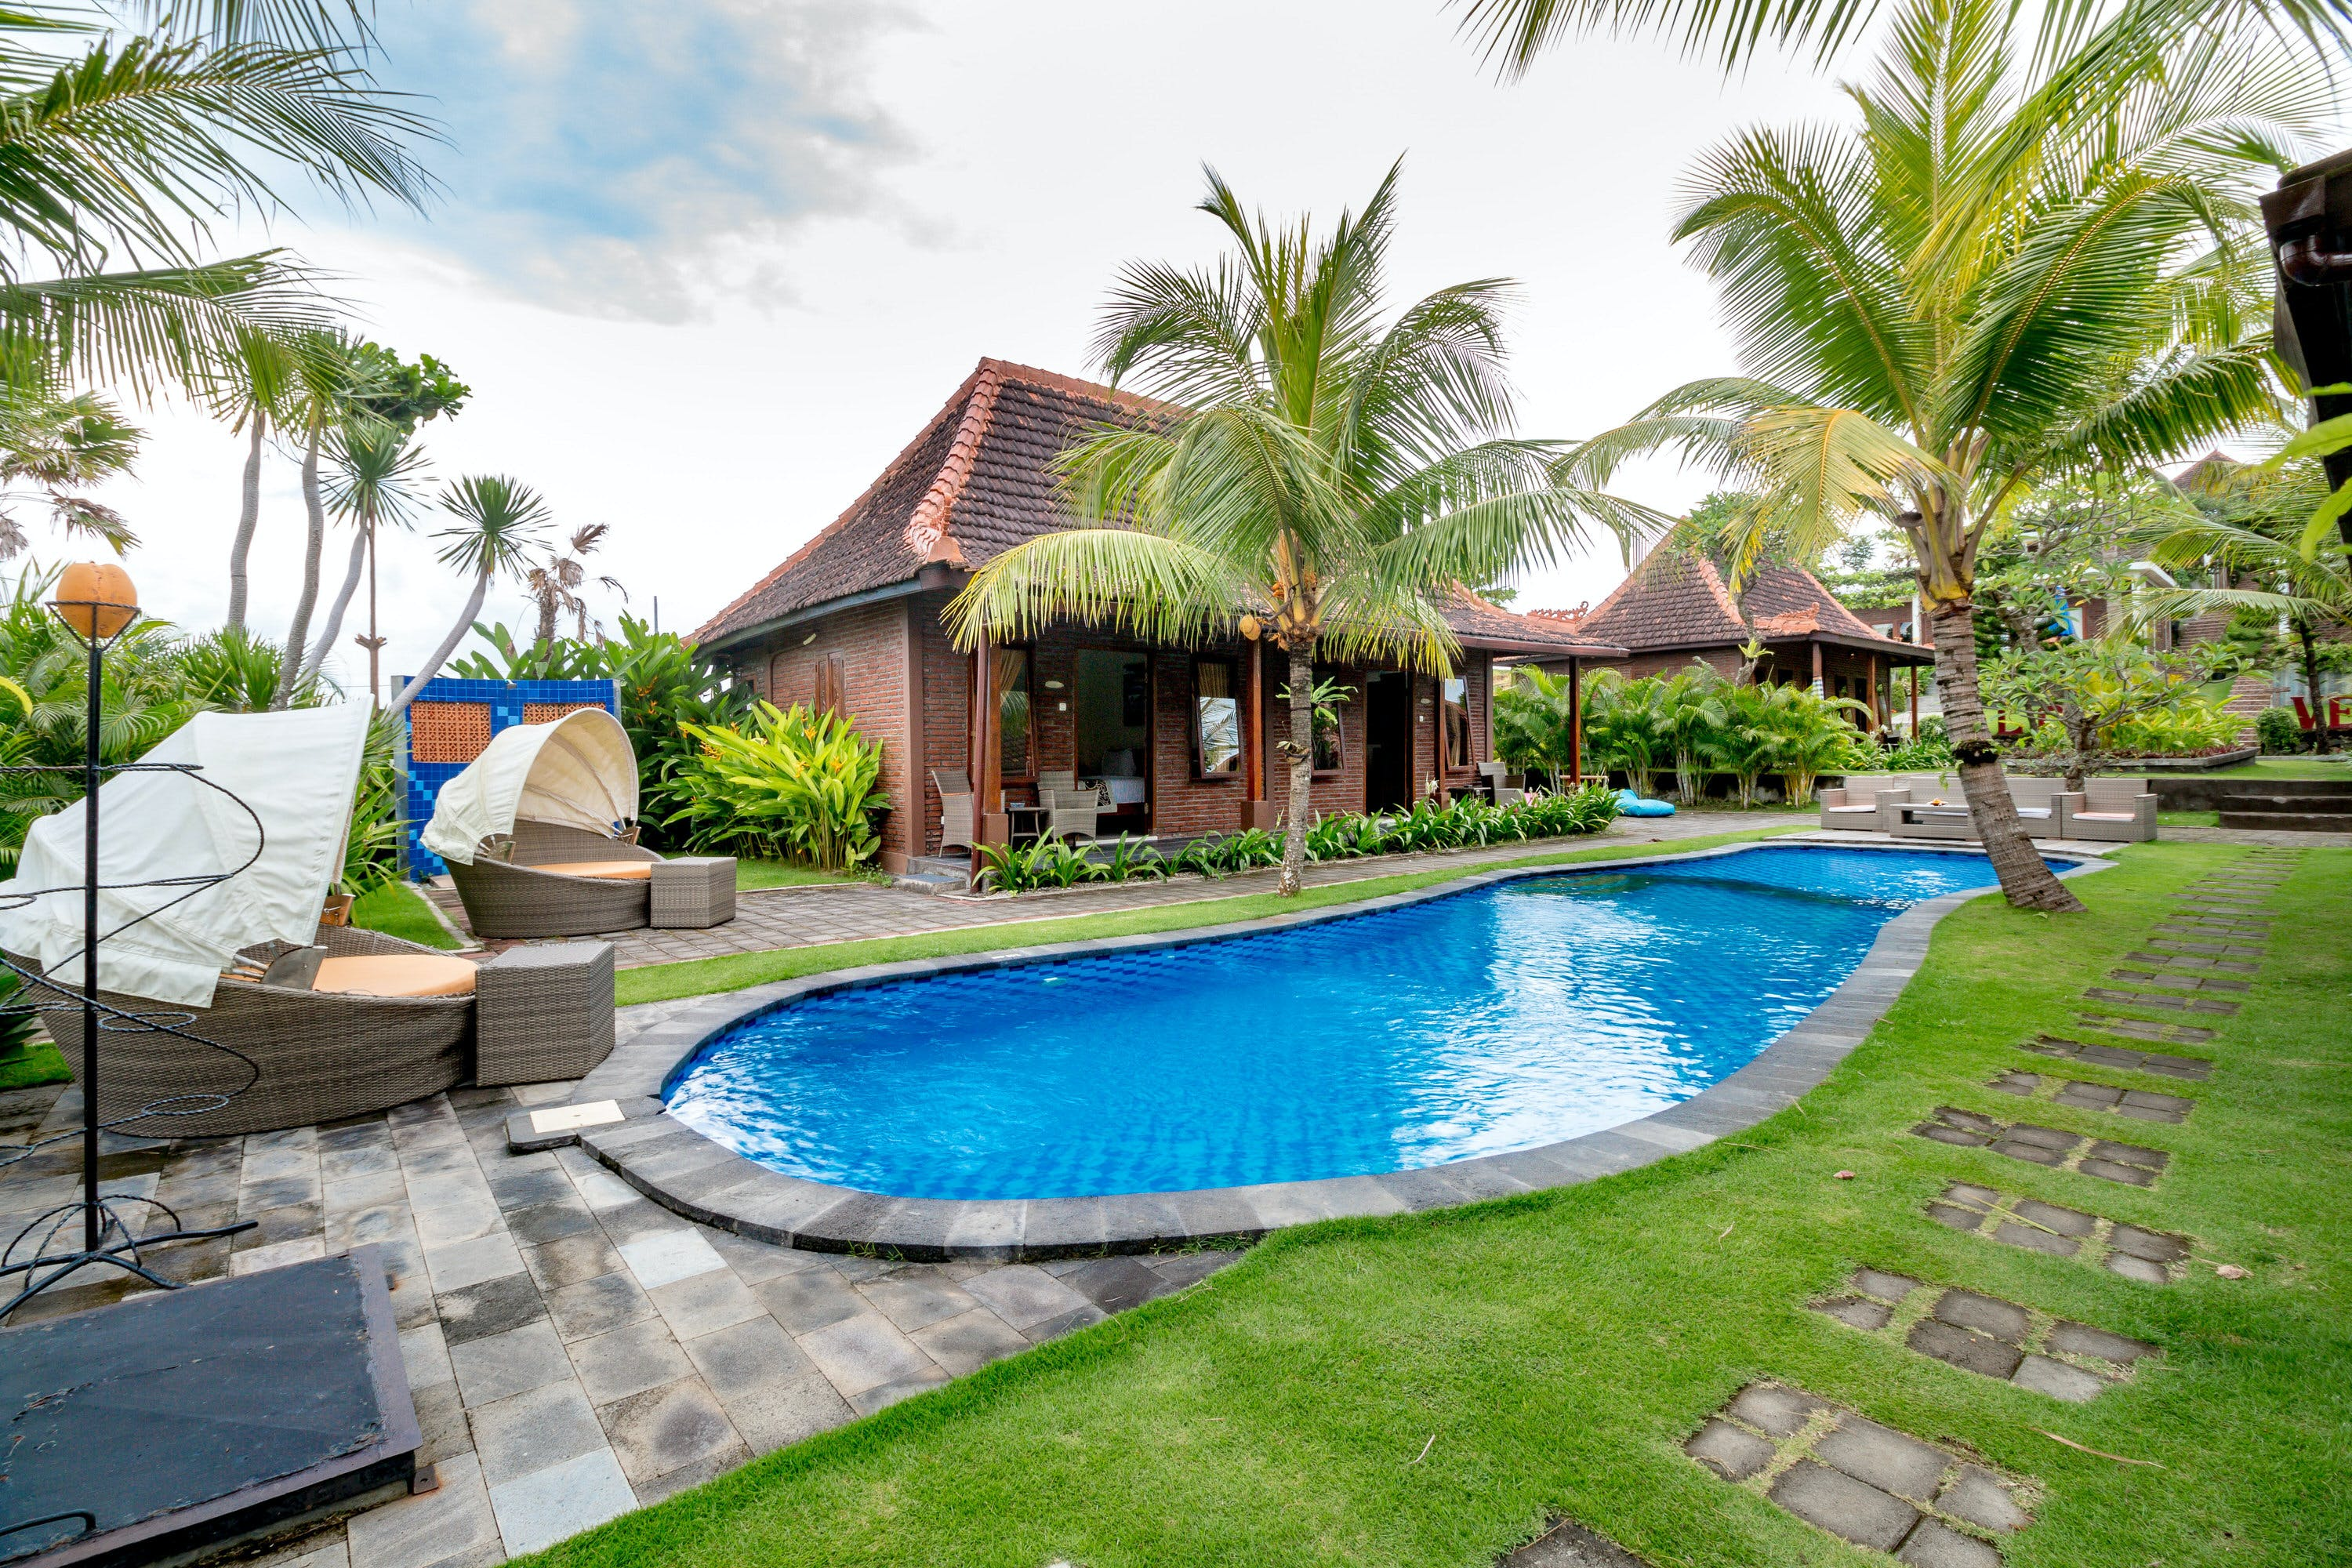 Front Pool Room at Sea Medewi Resort, best hotel for surfing, yoga, and enjoy Medewi beach in Negara